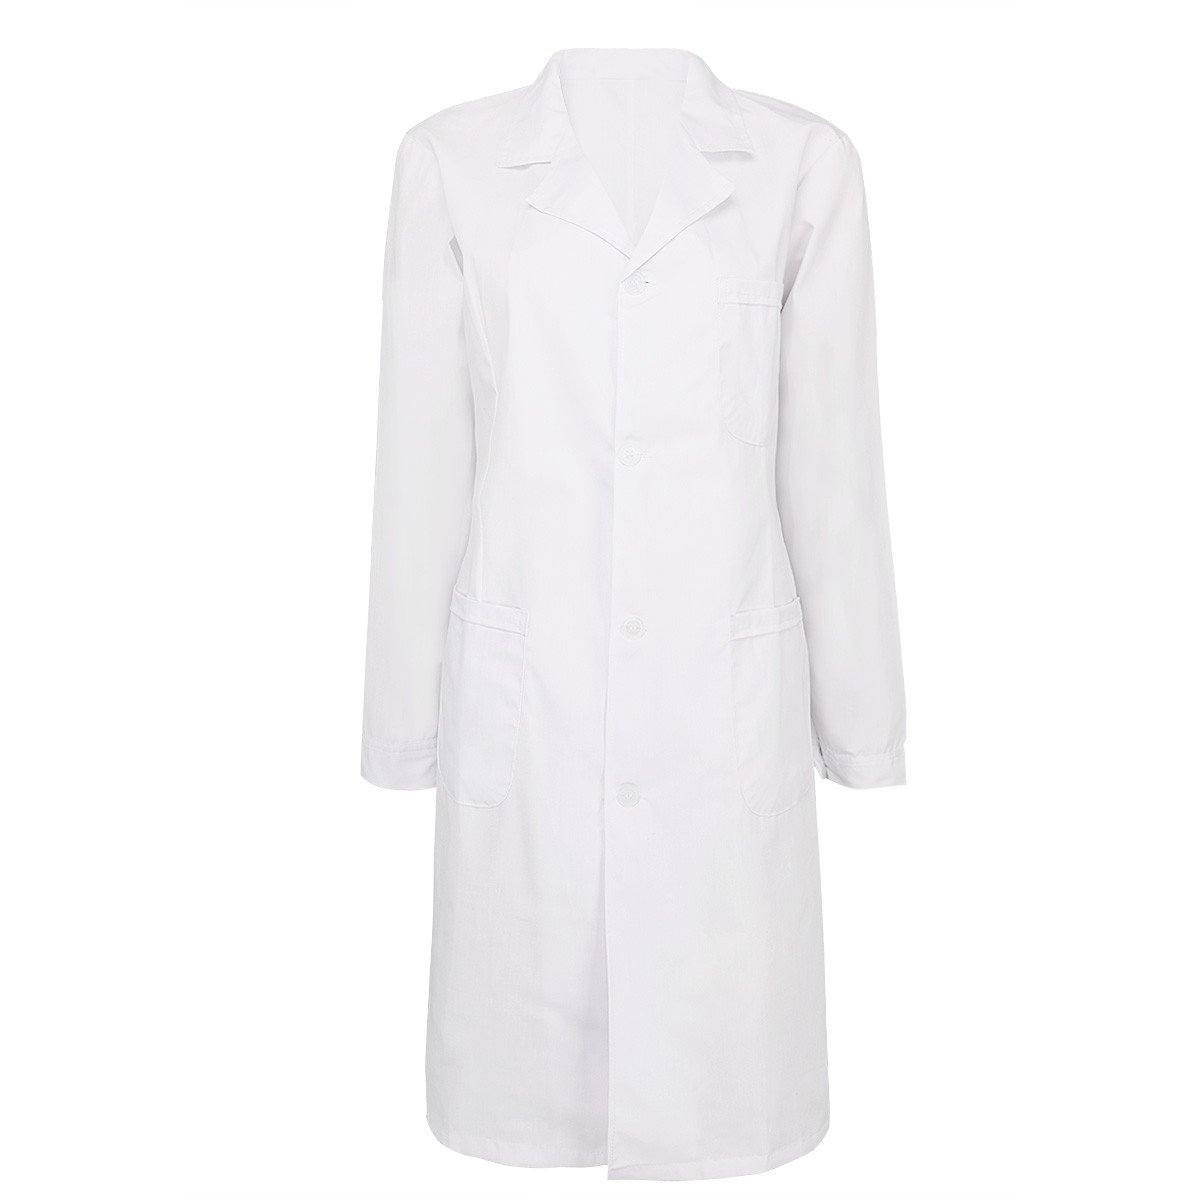 YiZYiF Mens Womens Long Sleeve Lab Coats Medical Doctor Nurse White Long Jacket Womens Small